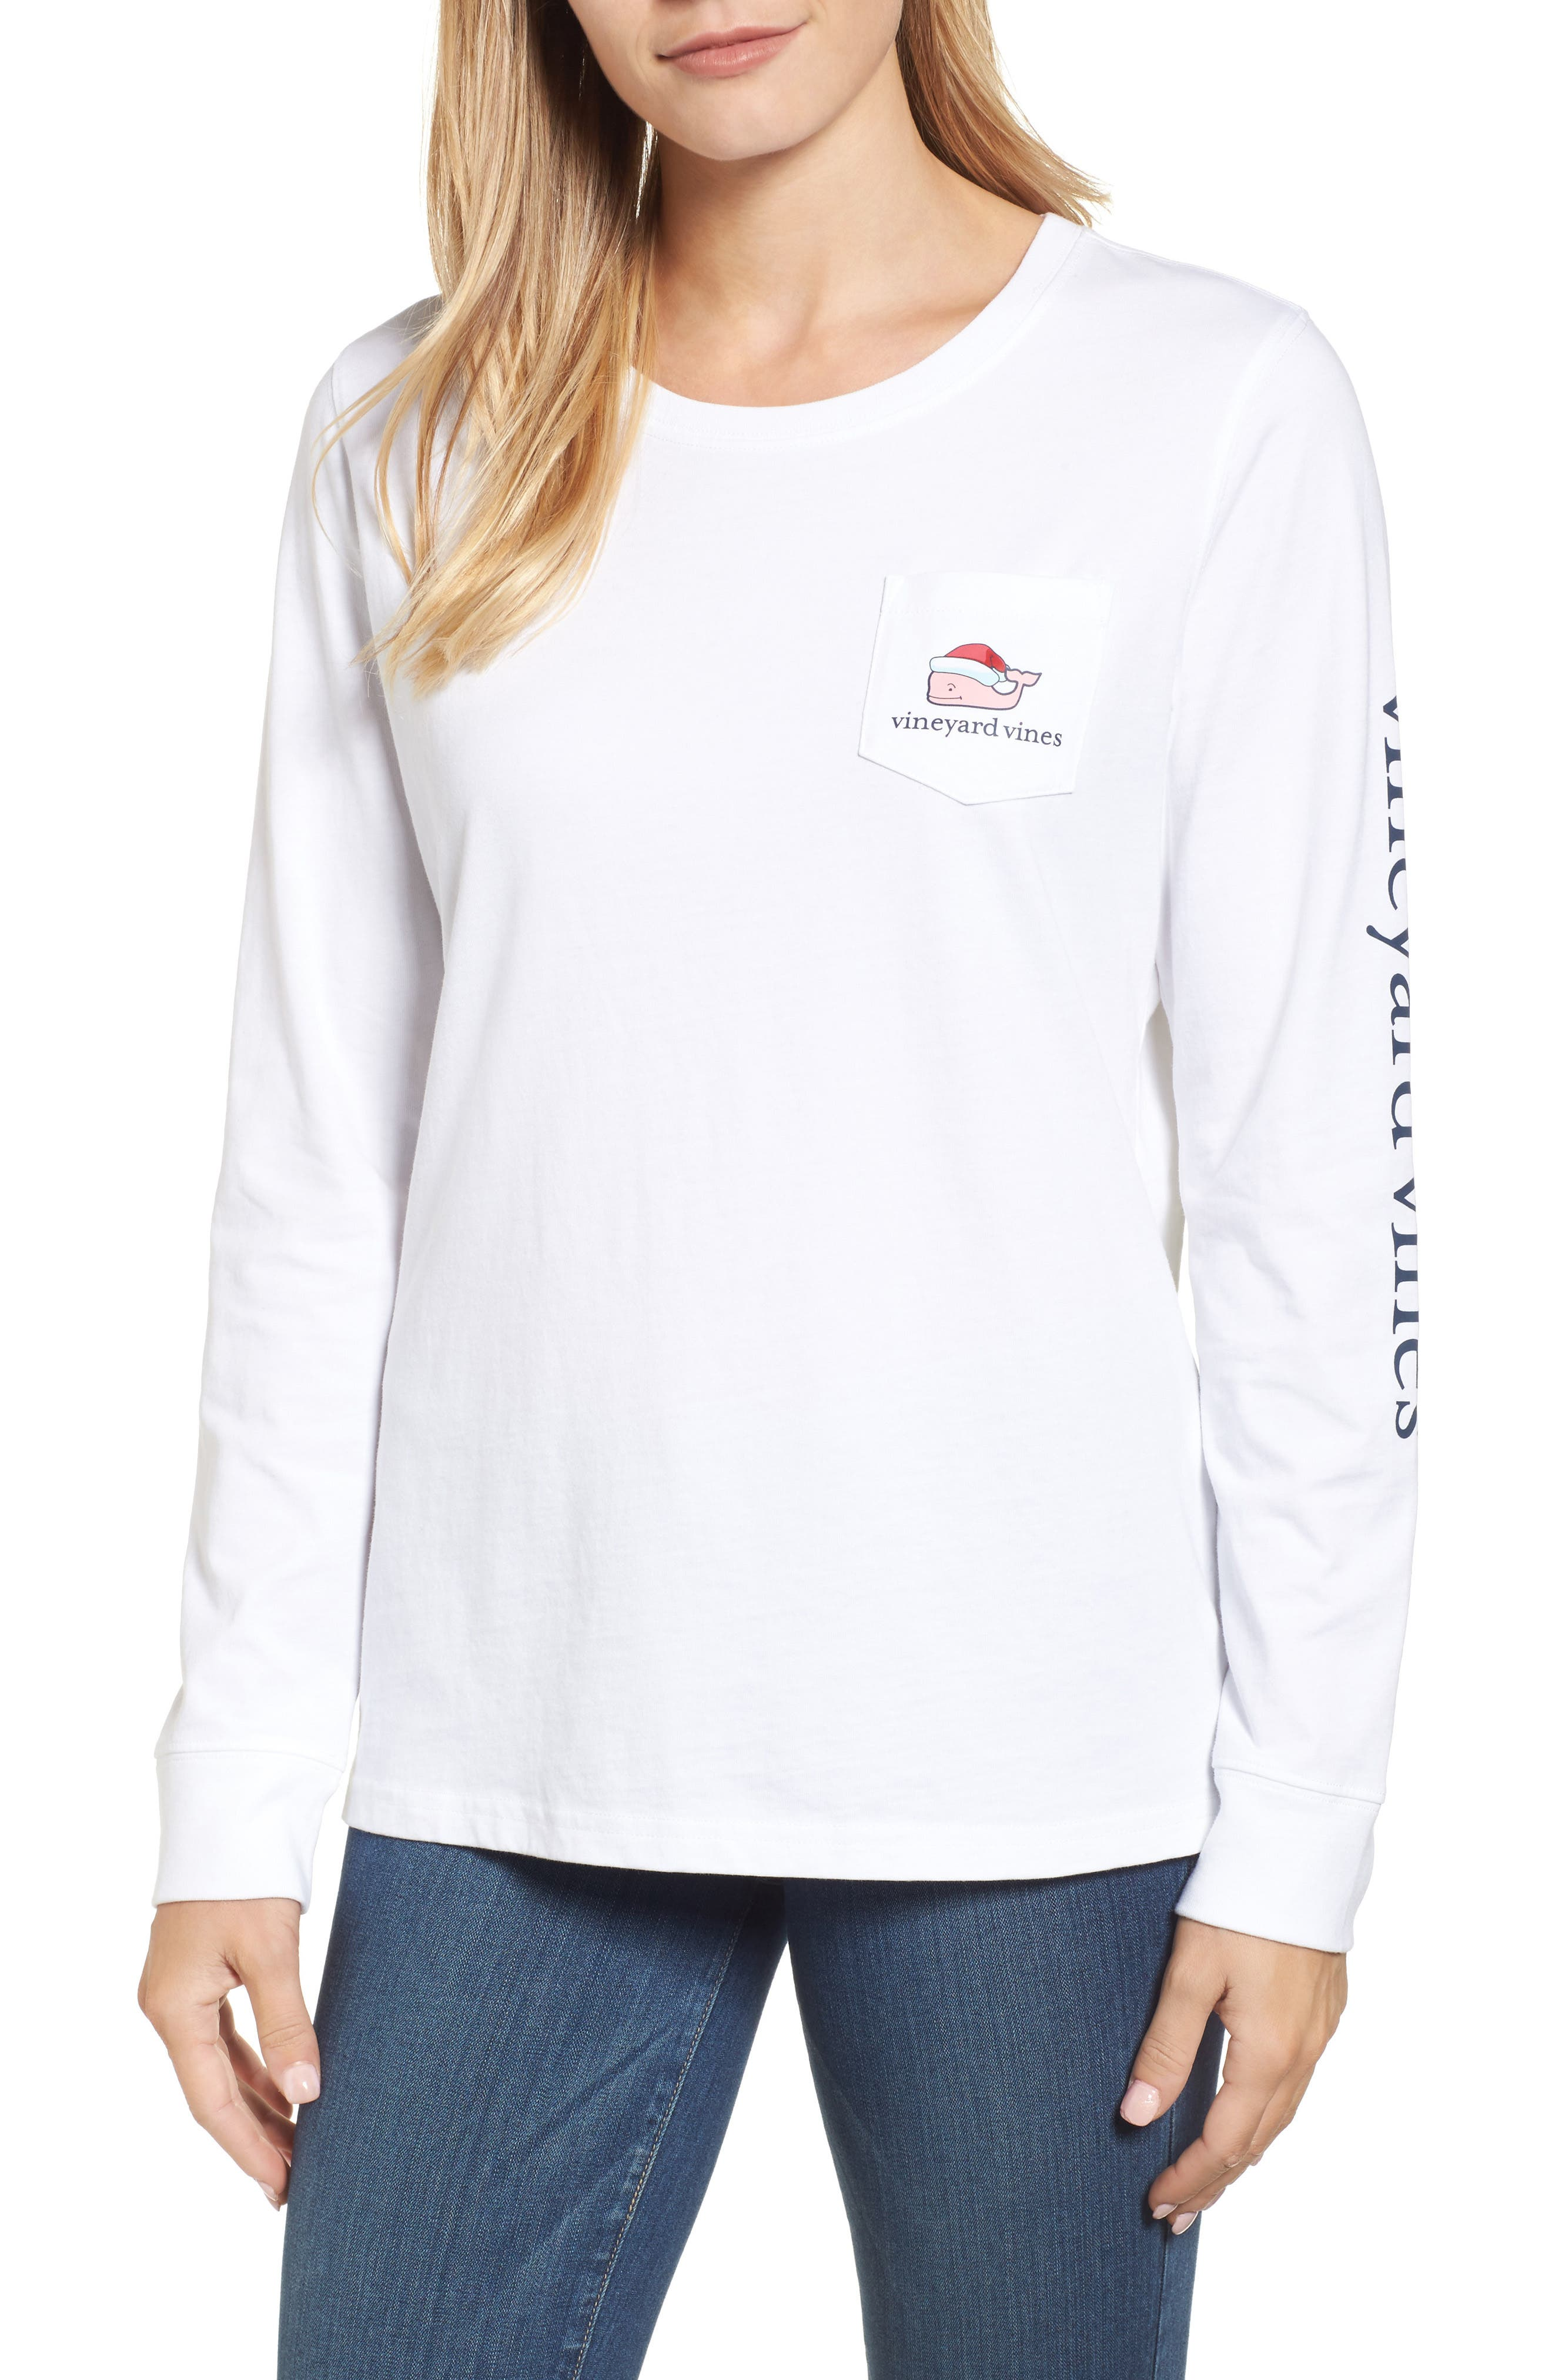 vineyard vines Santa Whale Pocket Tee